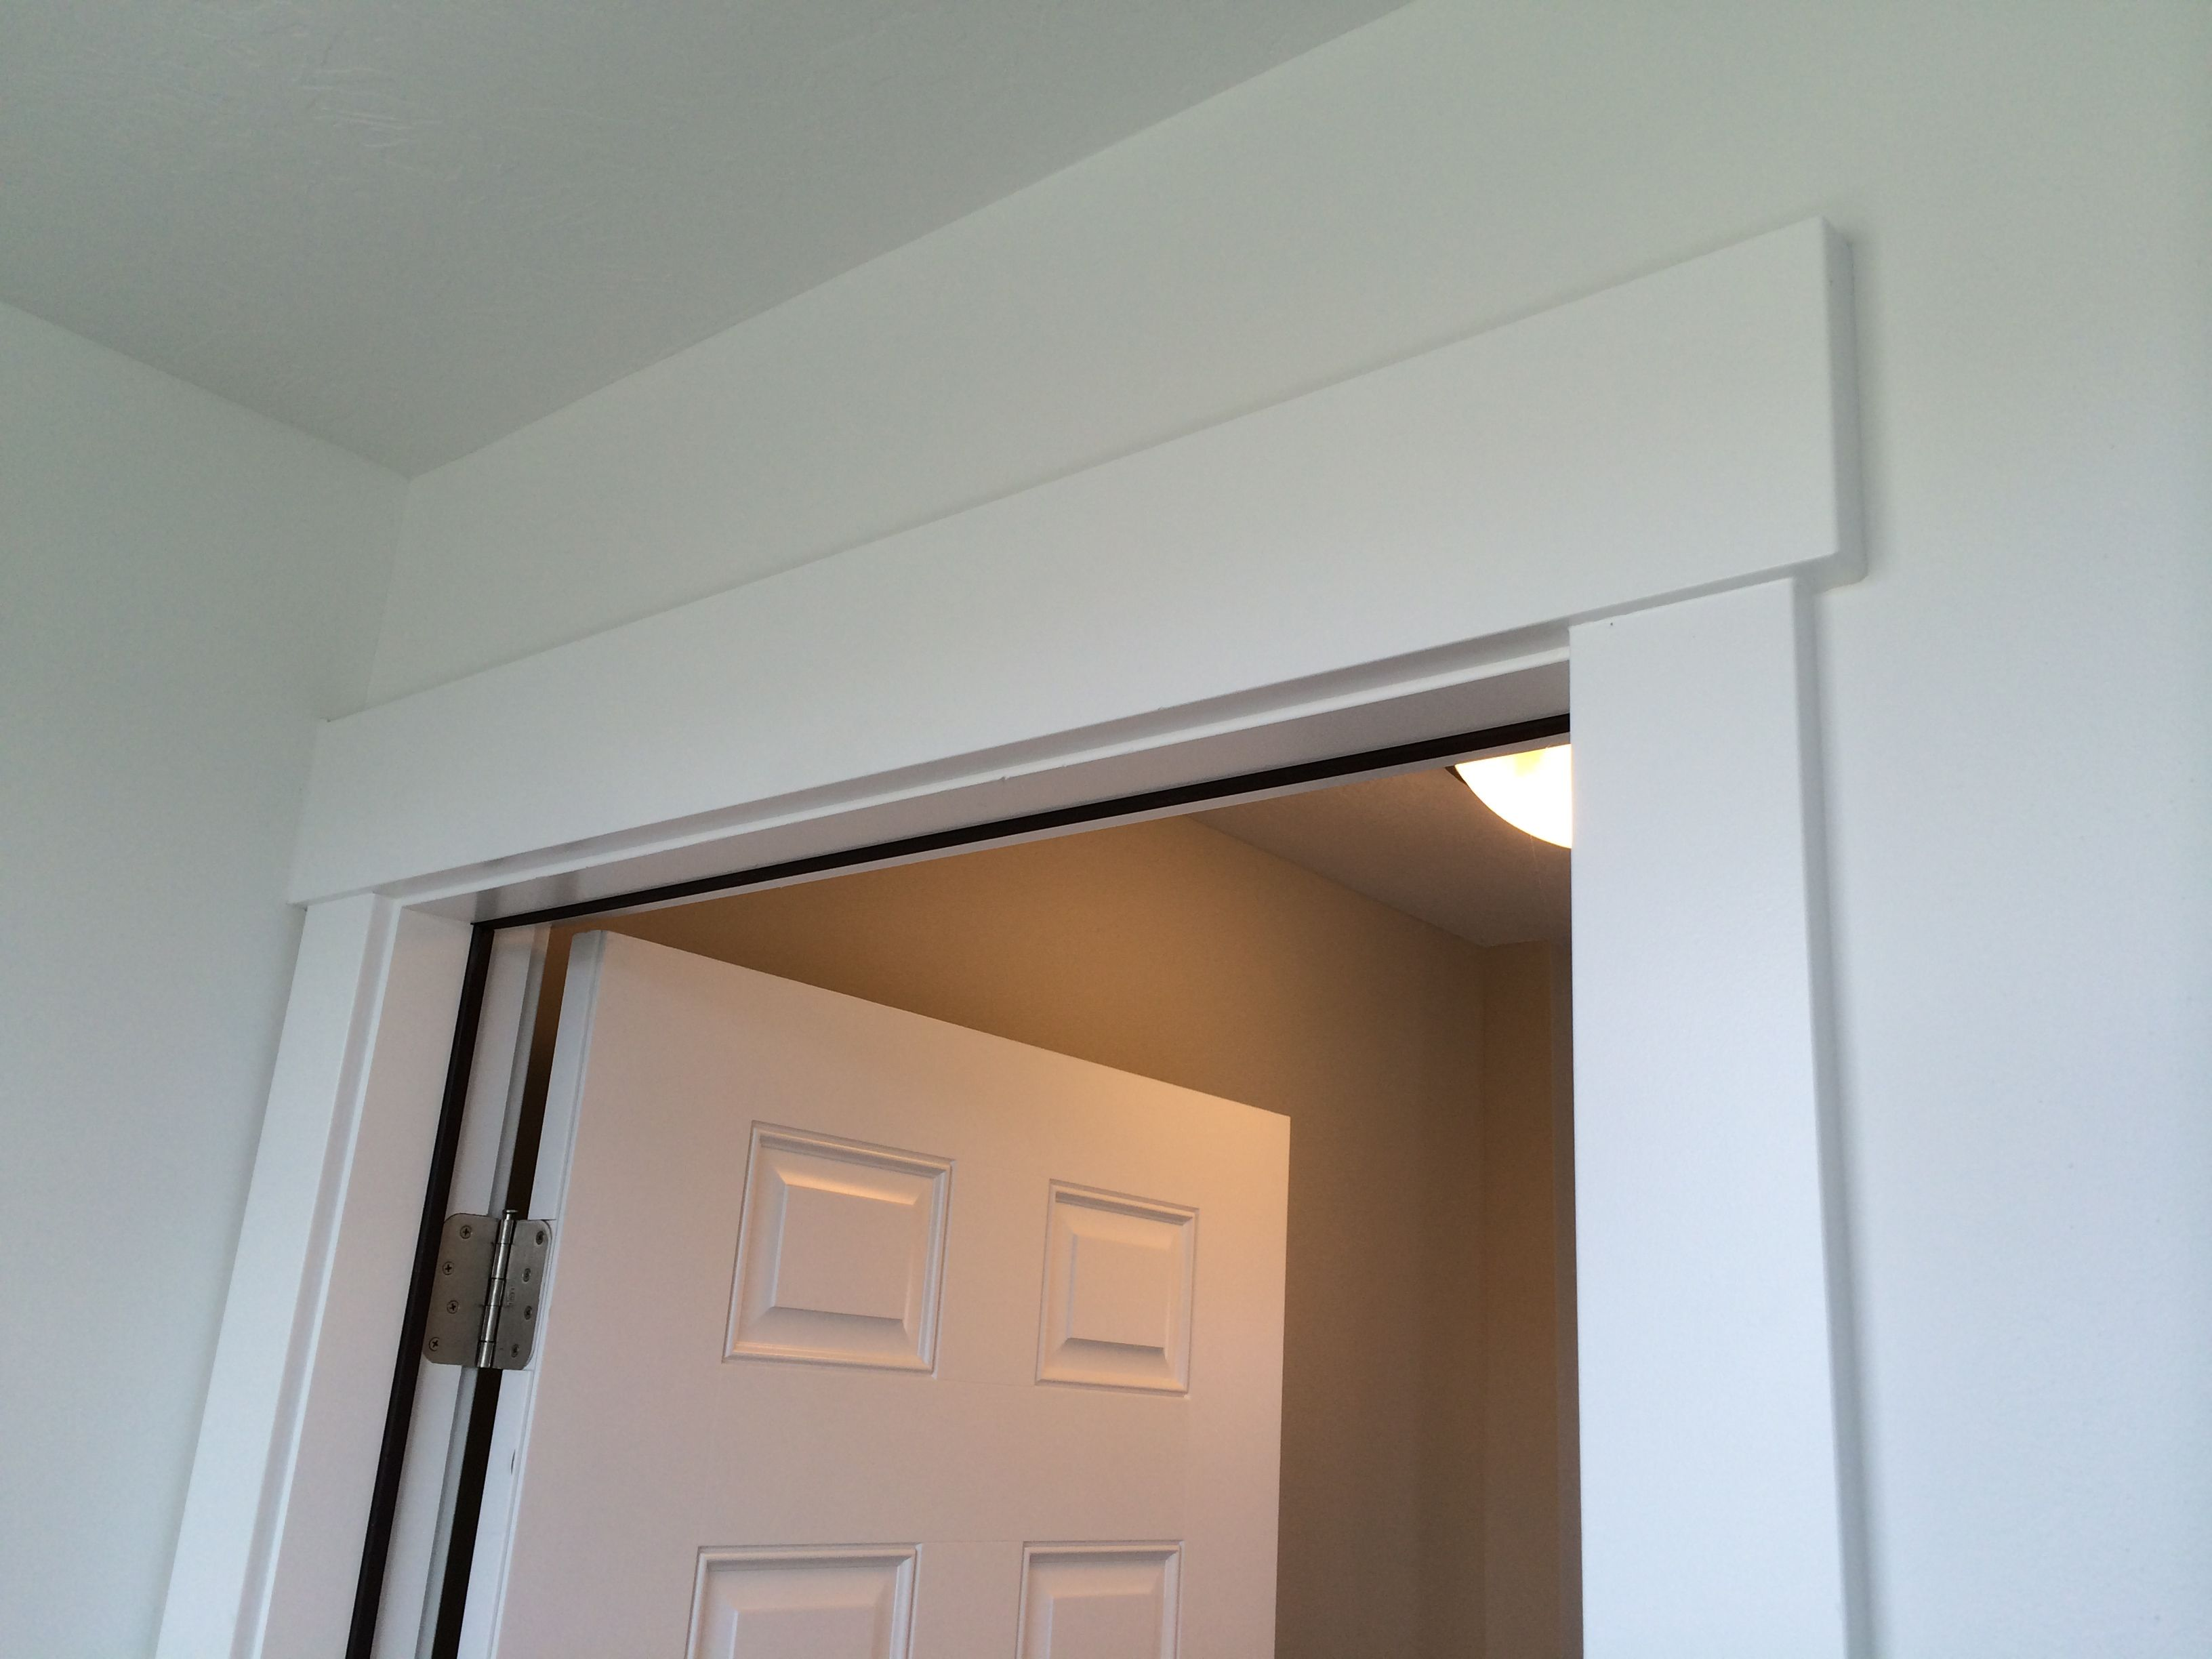 Mission style door casing and header finishes floors for Mission style moulding